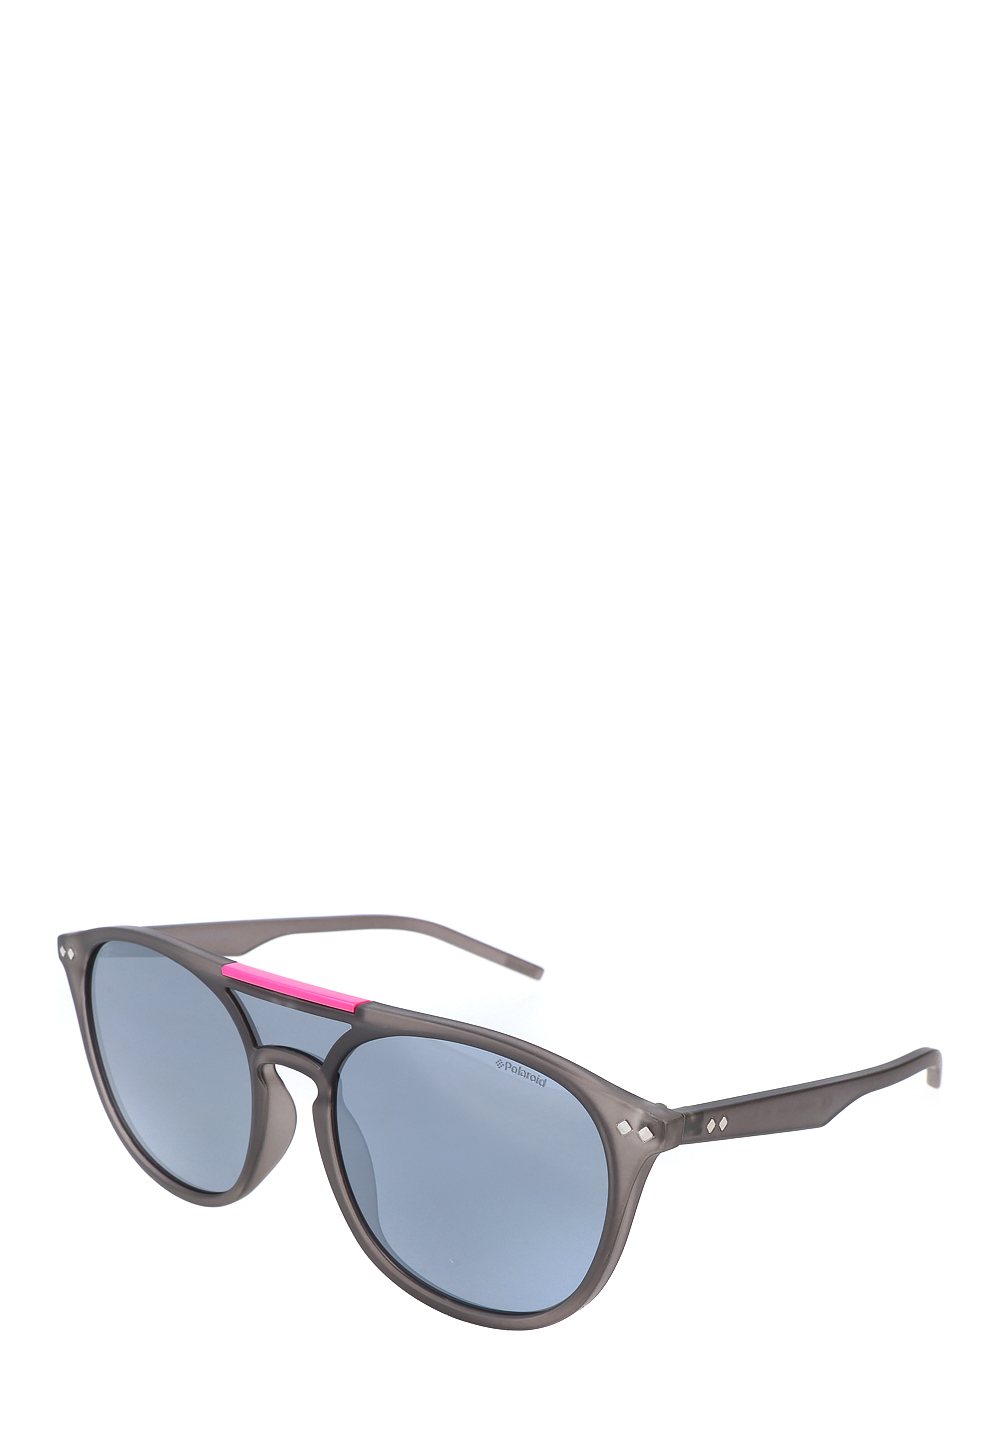 Sonnenbrille Pld6023/S, polarized, Uv400, grey grau